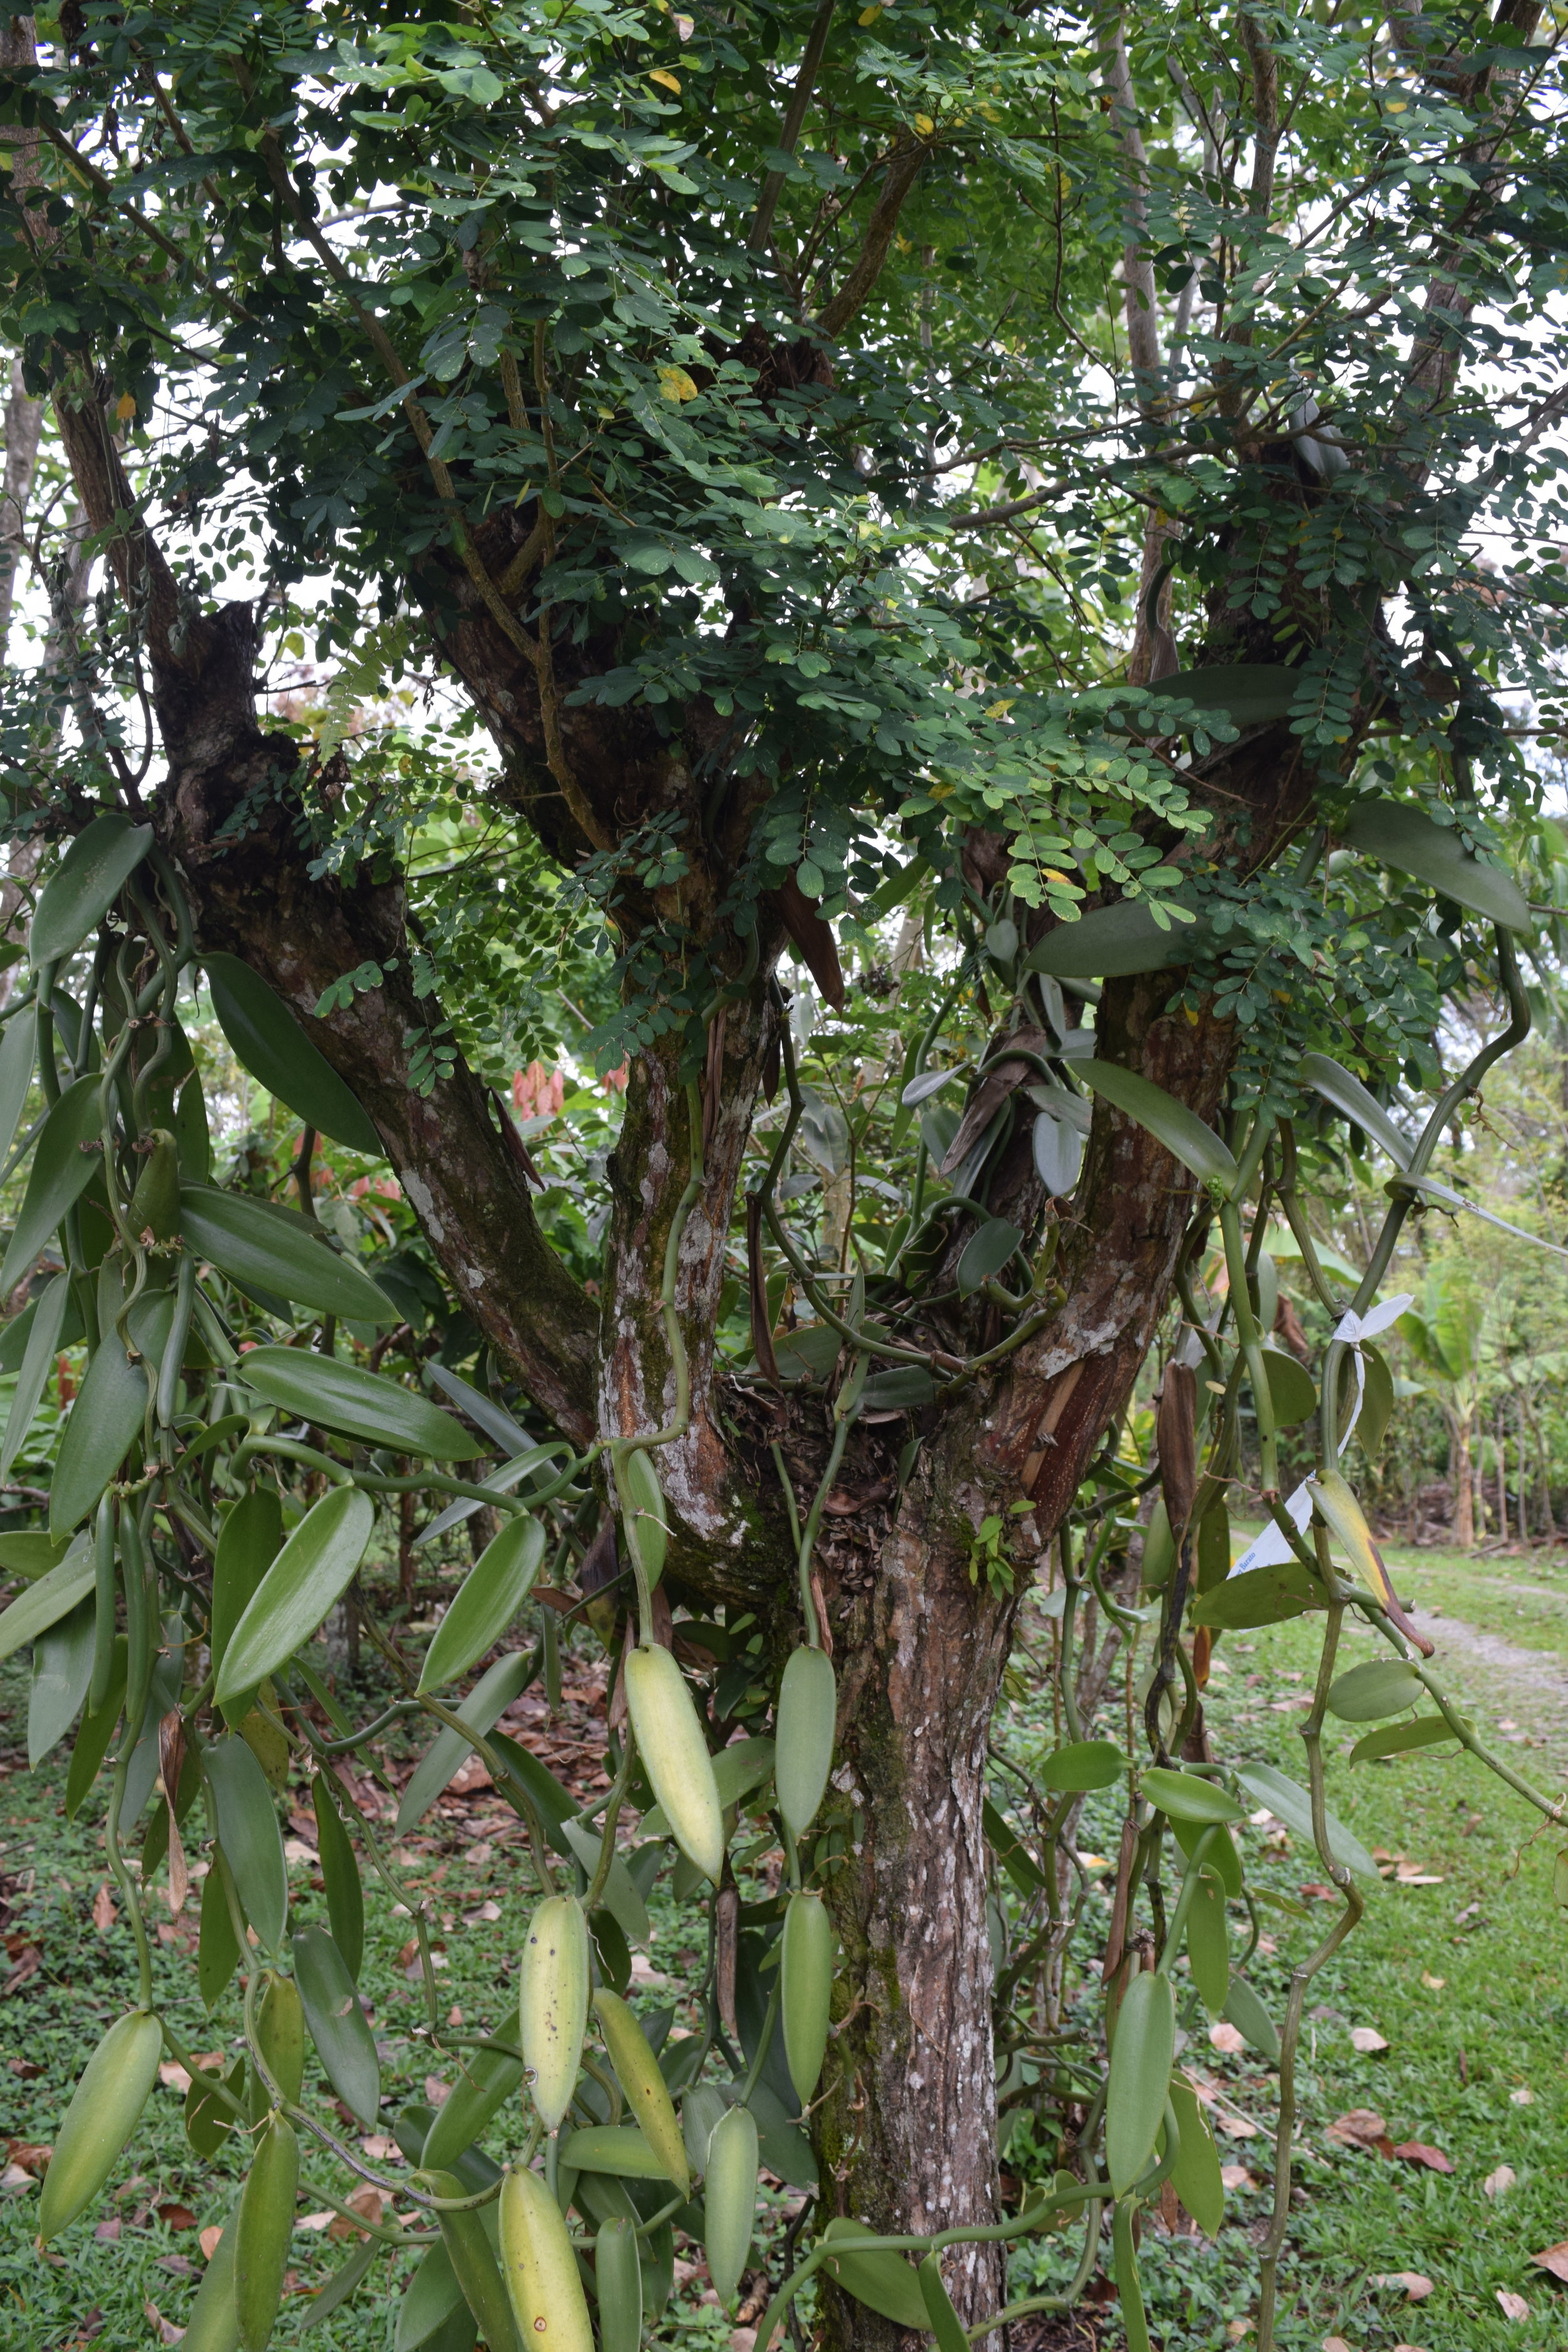 An excellent vanilla support post allows the vine to hang comfortably.